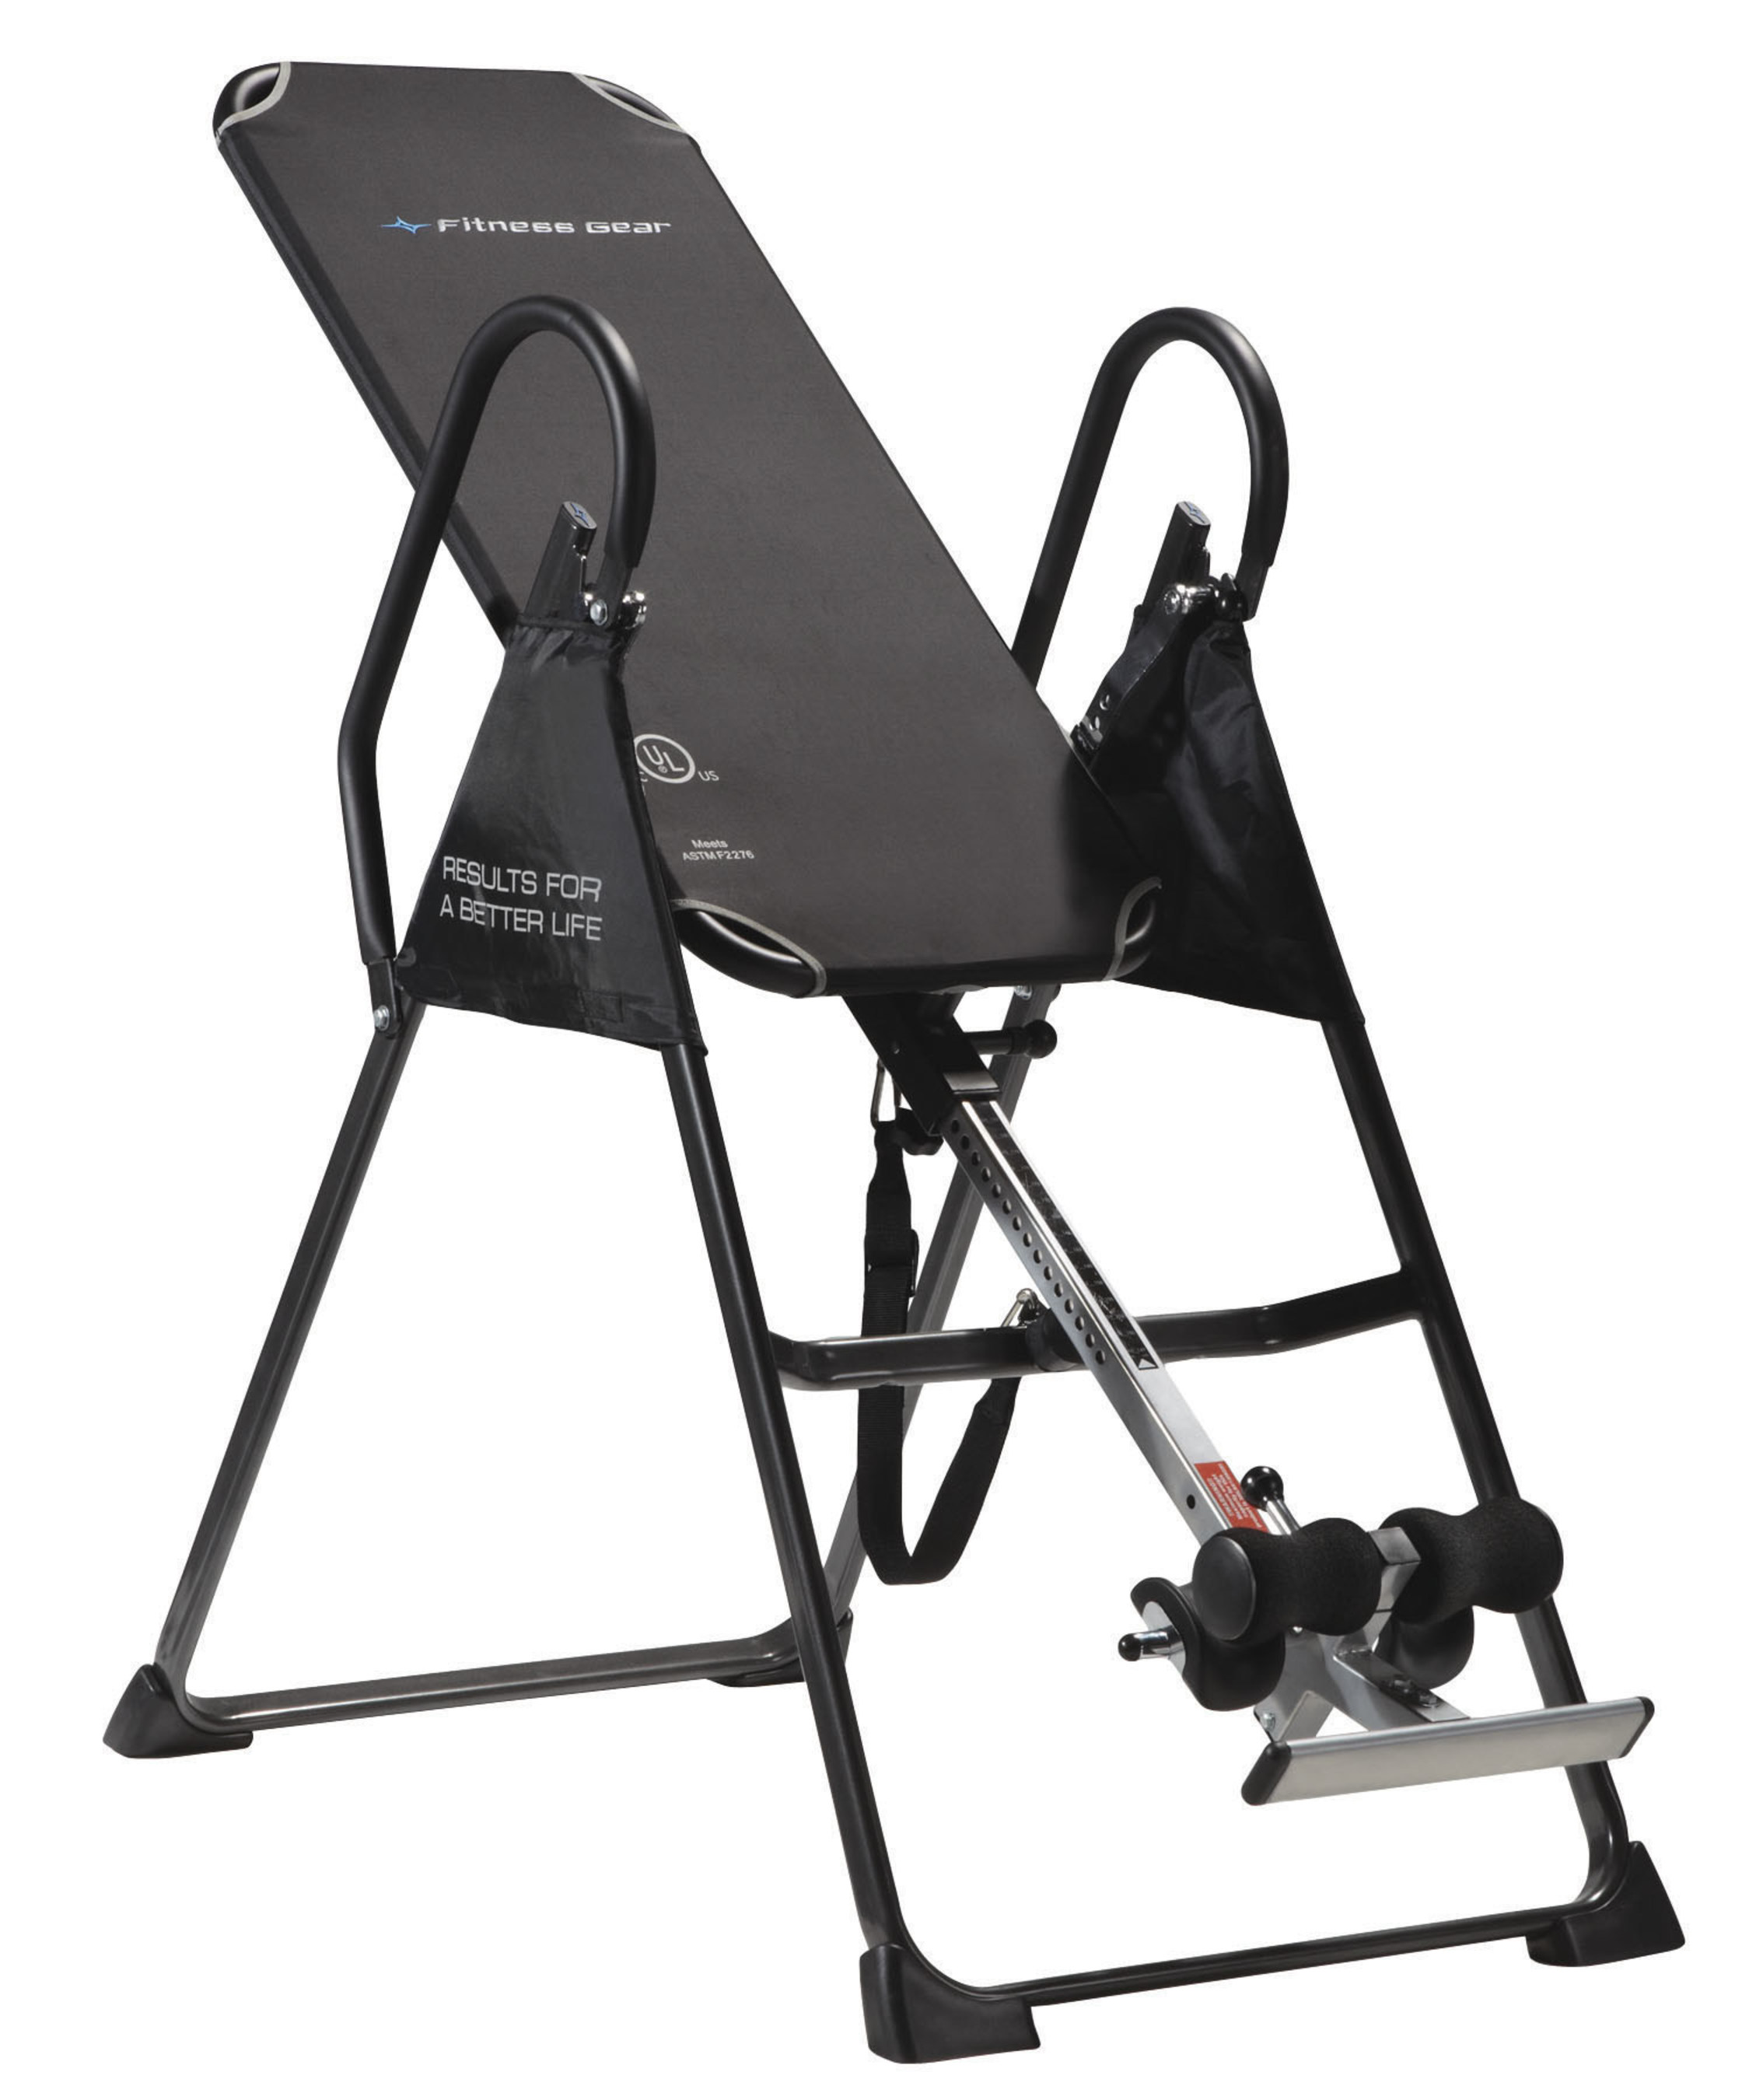 marcy inversion chair table outdoor wood chairs diy dicks sporting goods voluntarily recalls fitness gear